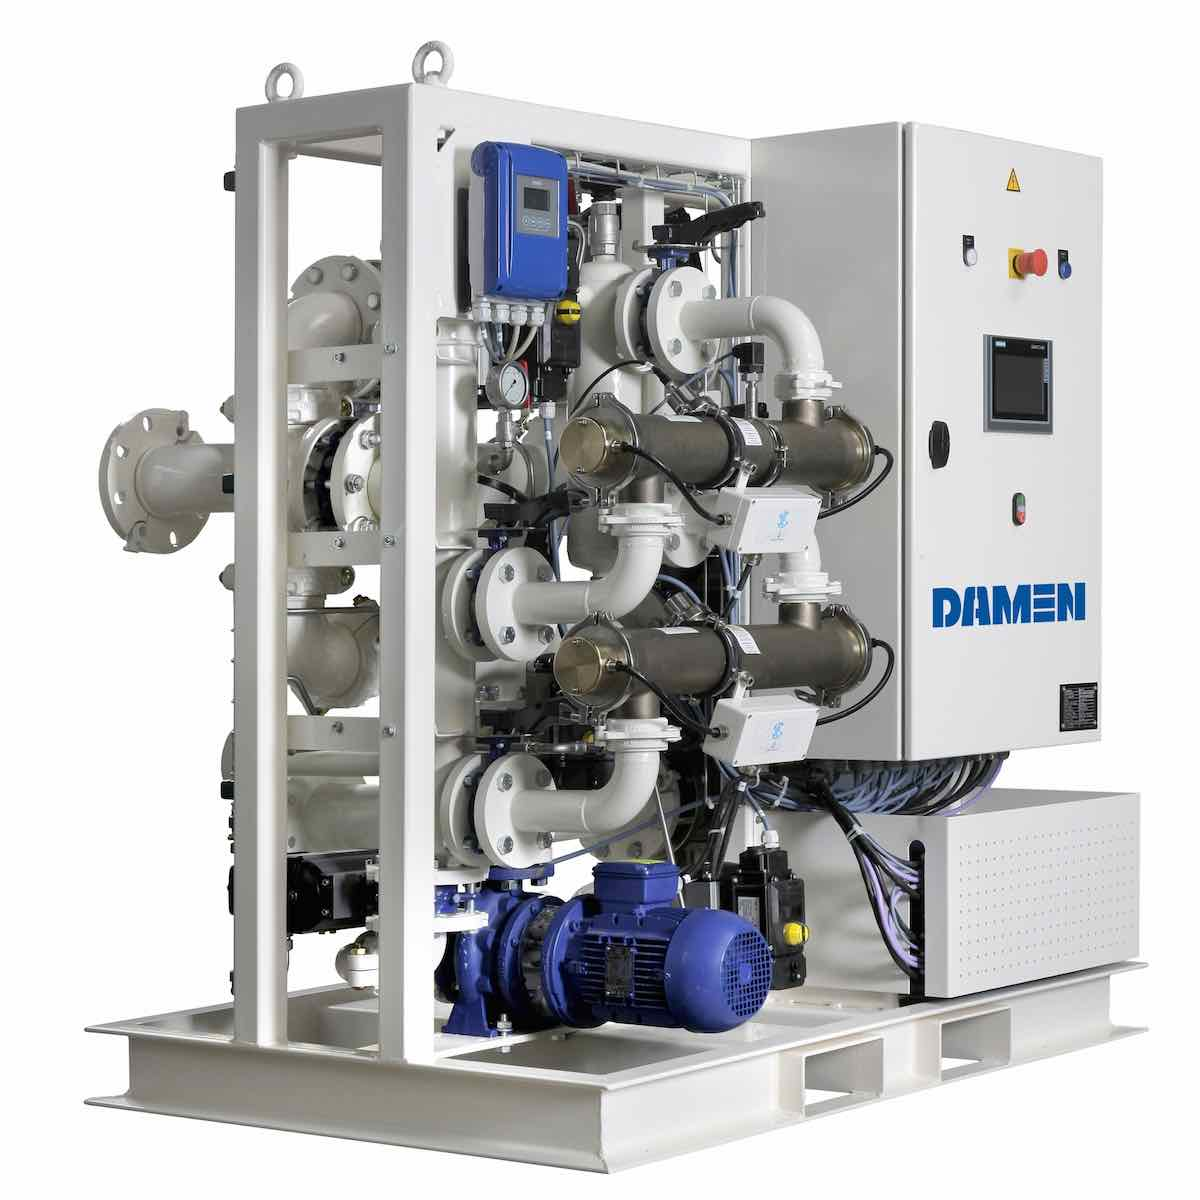 New Damen solutions for ballast water treatment retrofitting